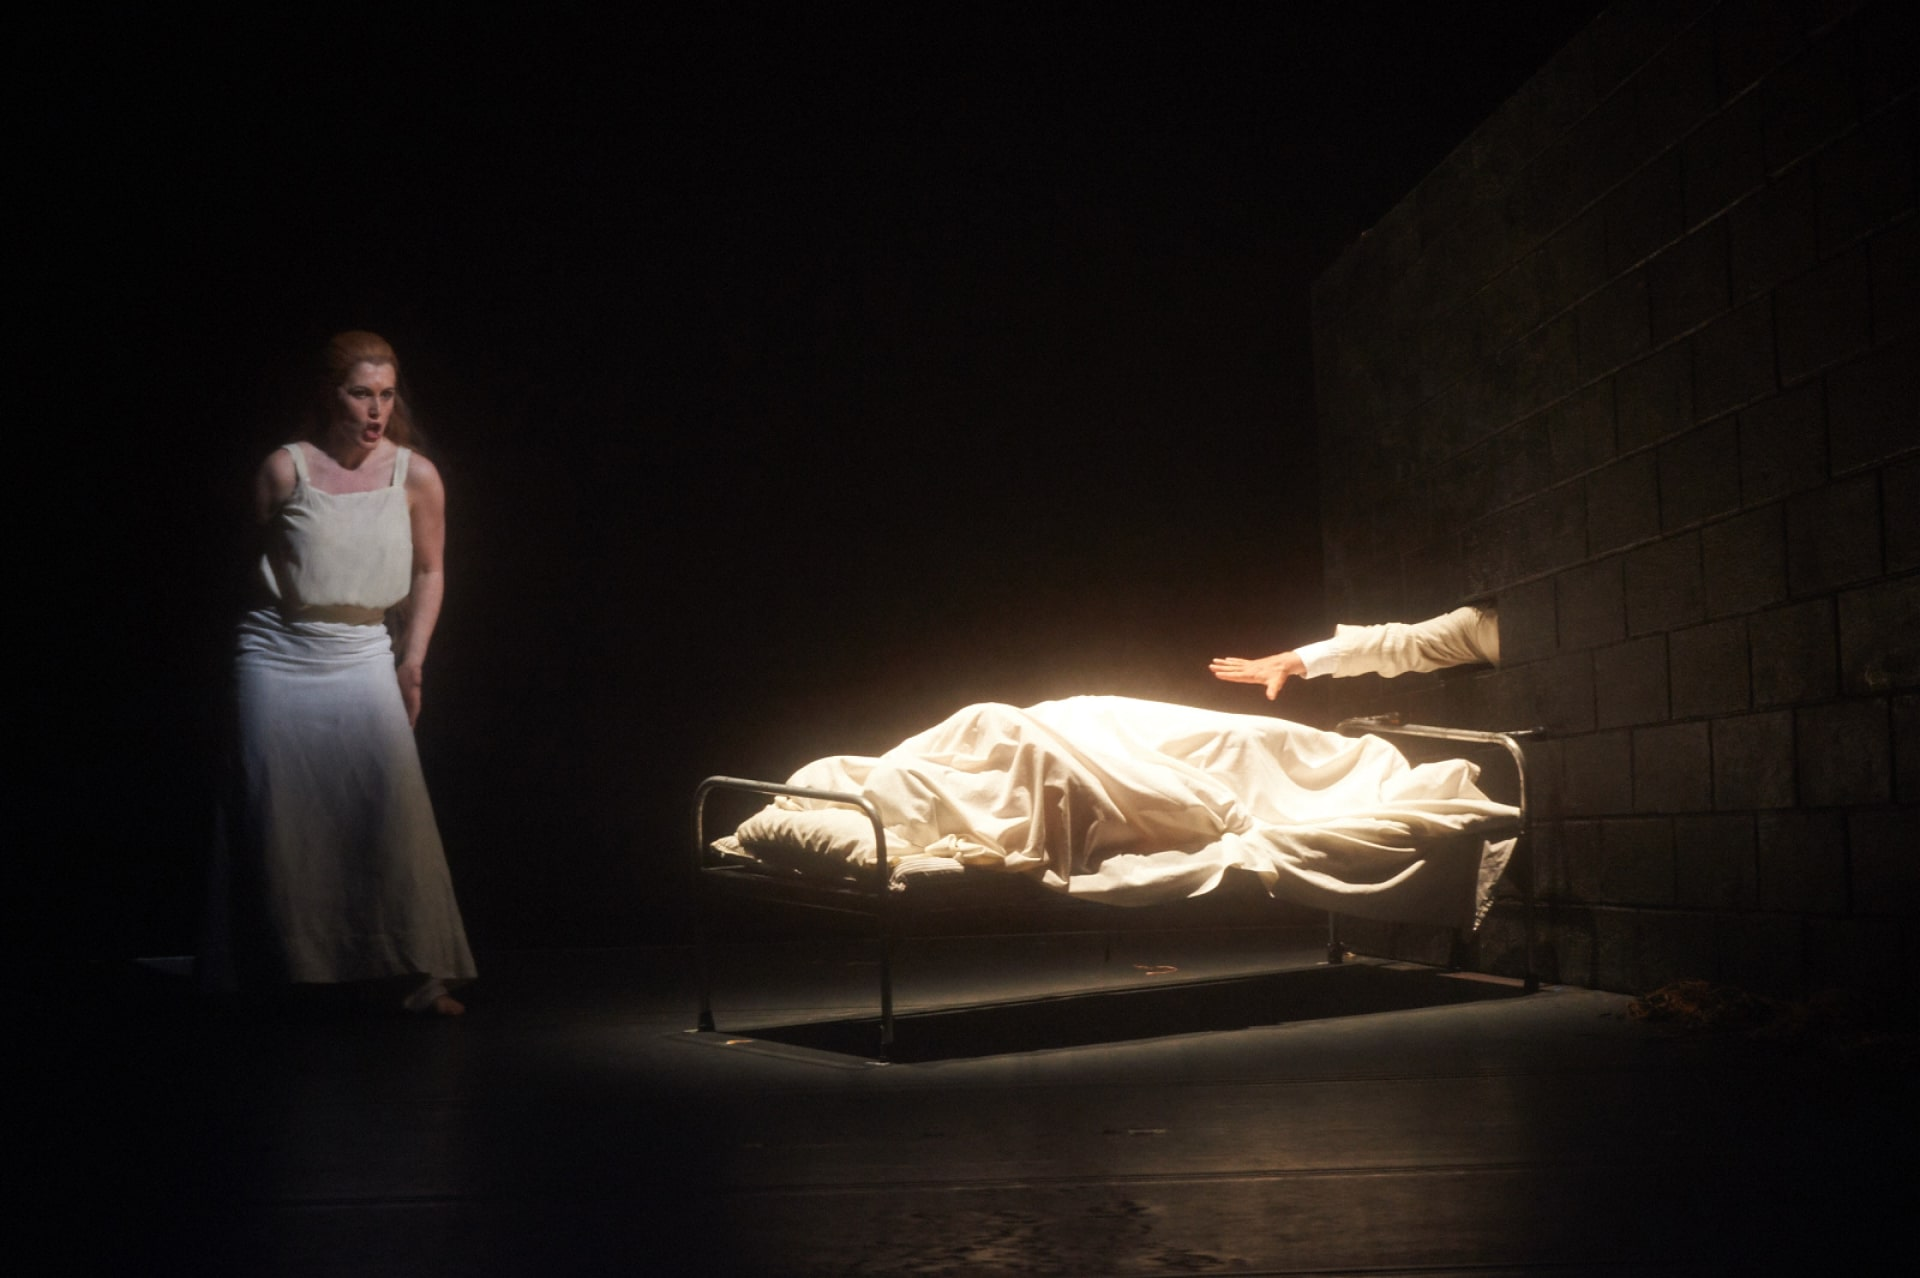 Woman in white camisole sings to shrouded body on iron cot as white-sleeved arm reaches out from brick wall.